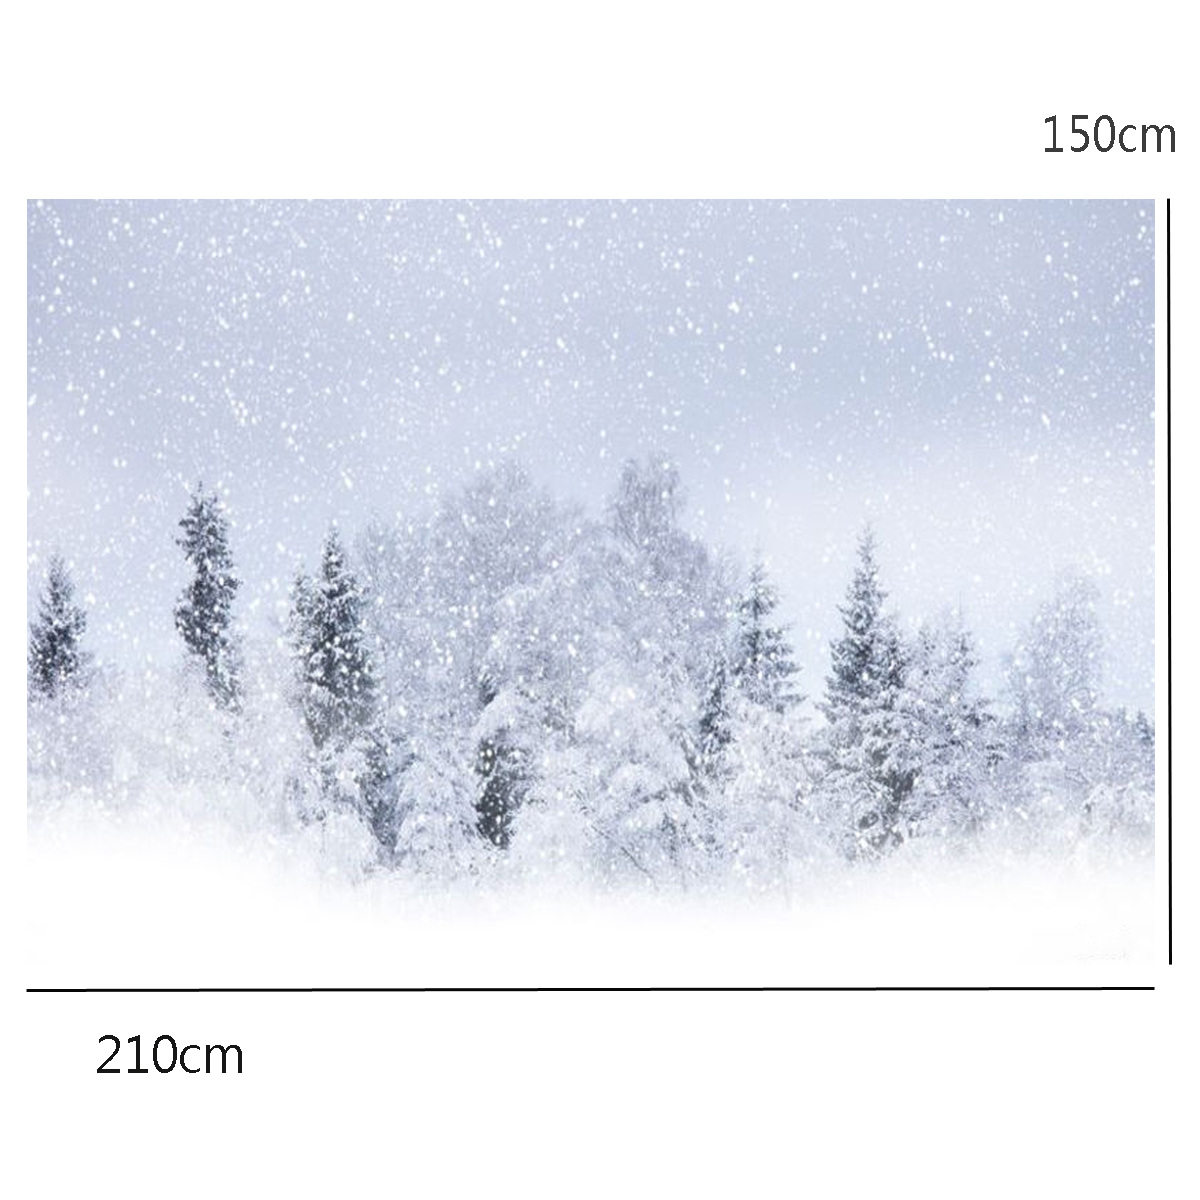 2.1x1.5m Snow Covered Forest Snow Covered Photographic Background